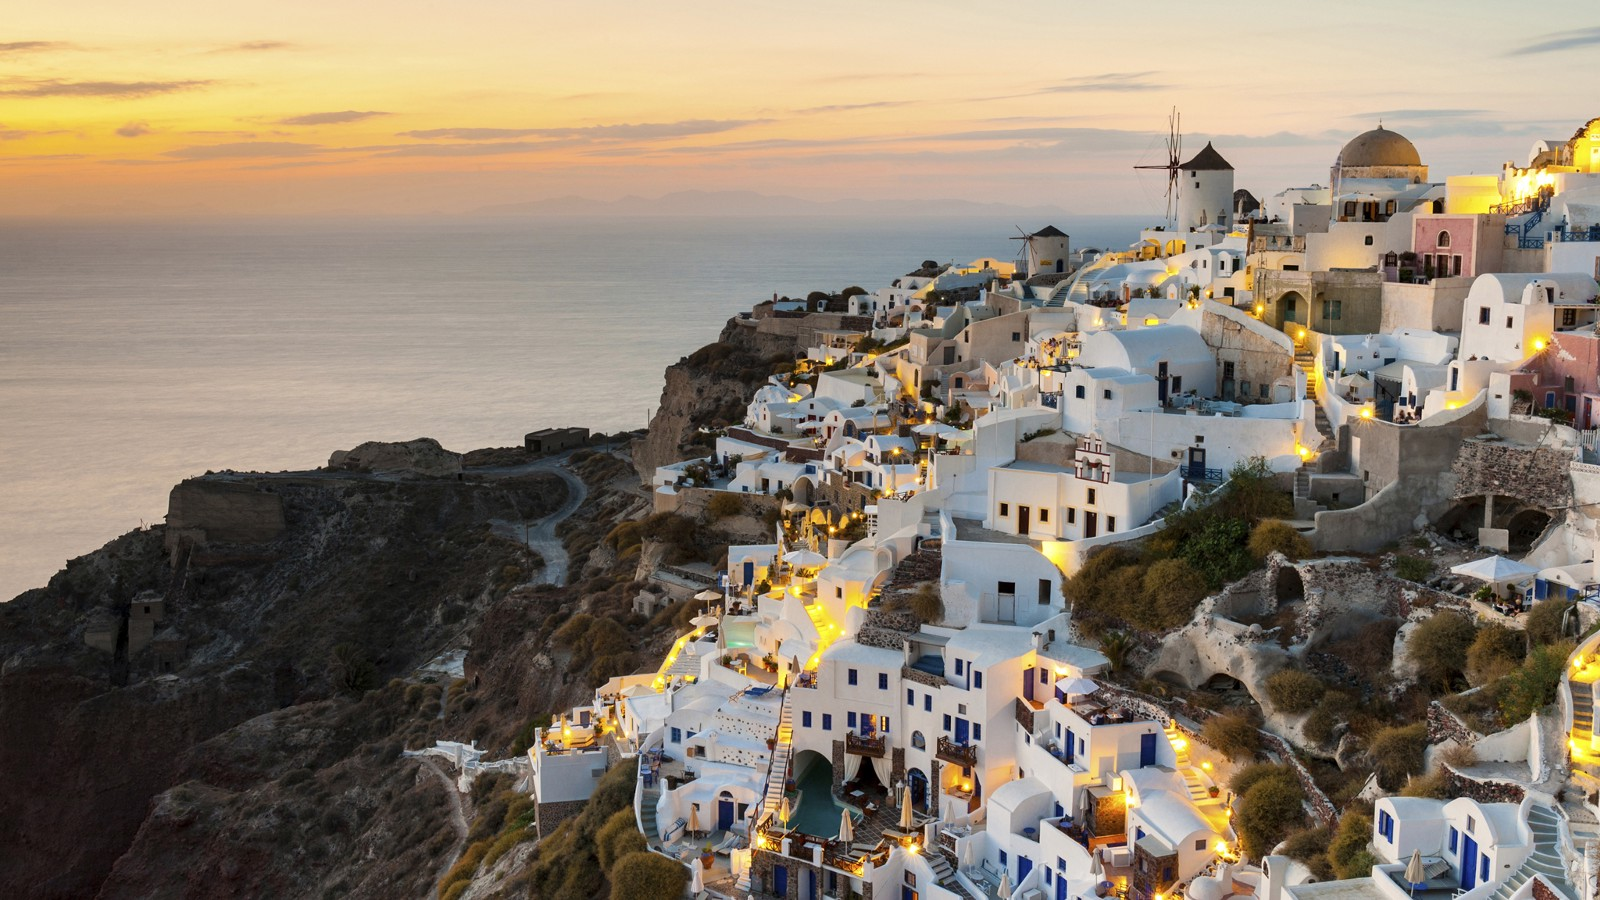 Village of Oia, Santorini, Greece